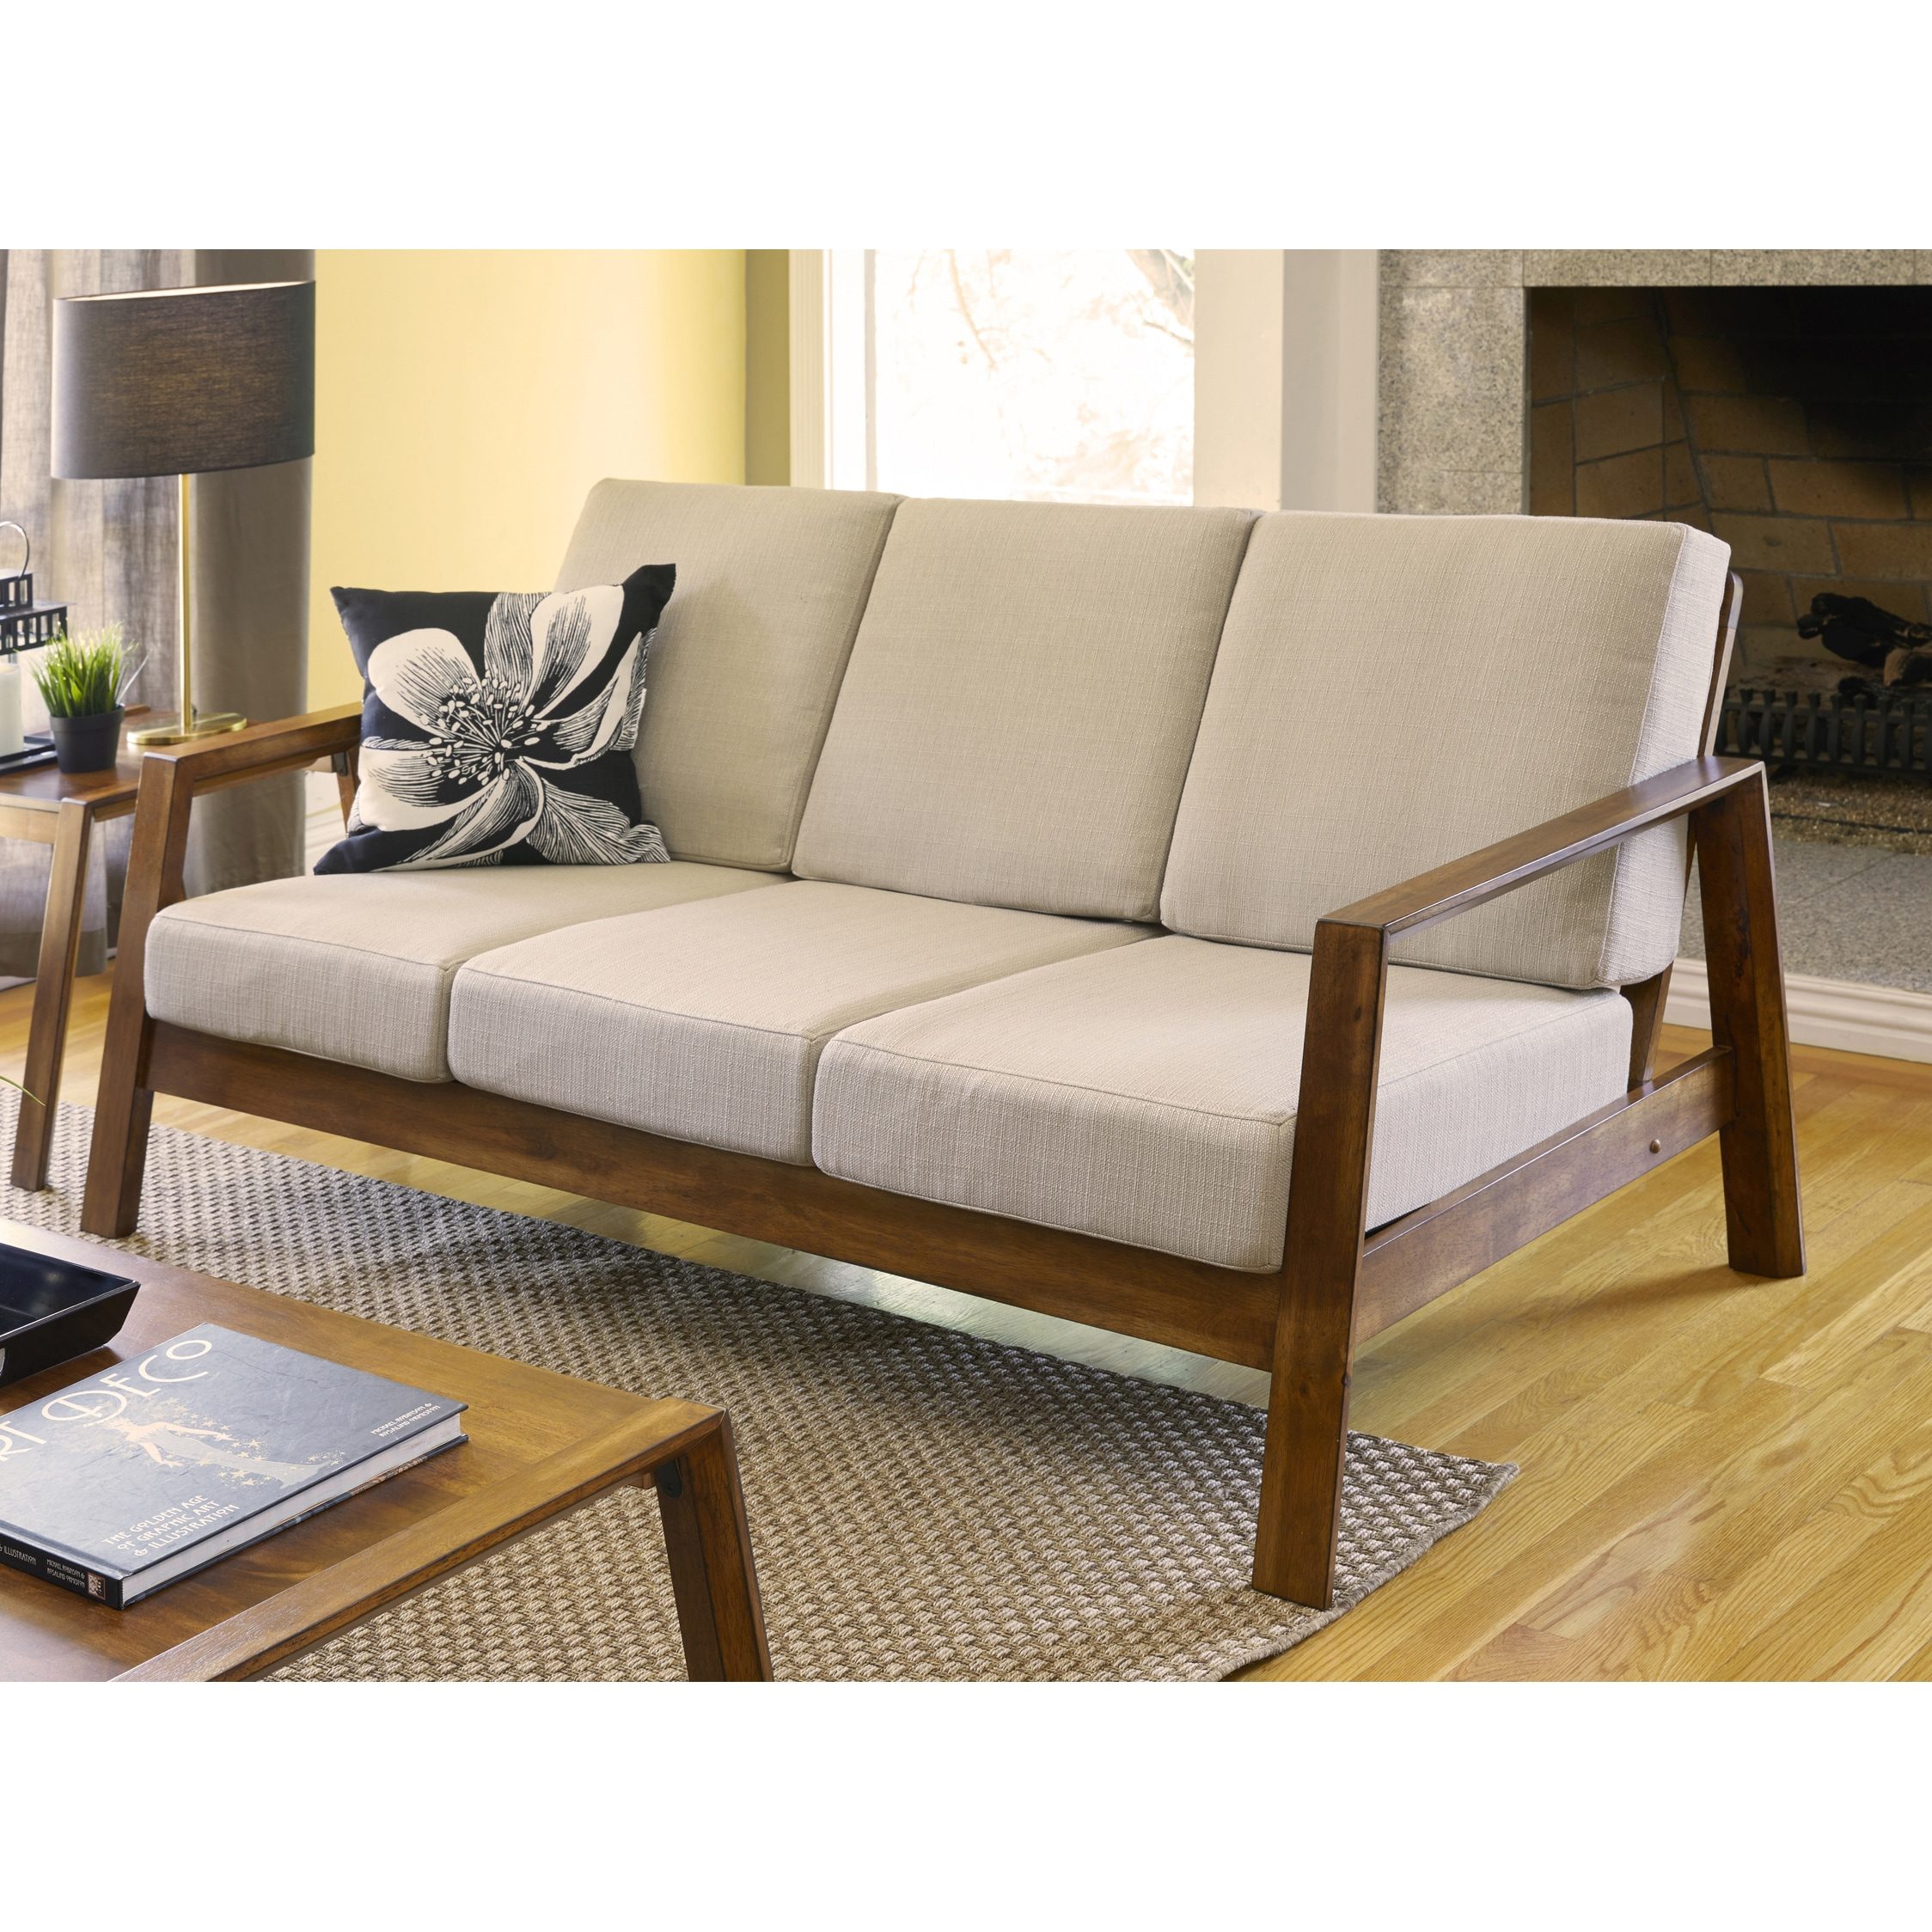 Genial Palm Canyon Murray Mid Century Modern Barley Tan Linen Sofa With Exposed  Wood Frame